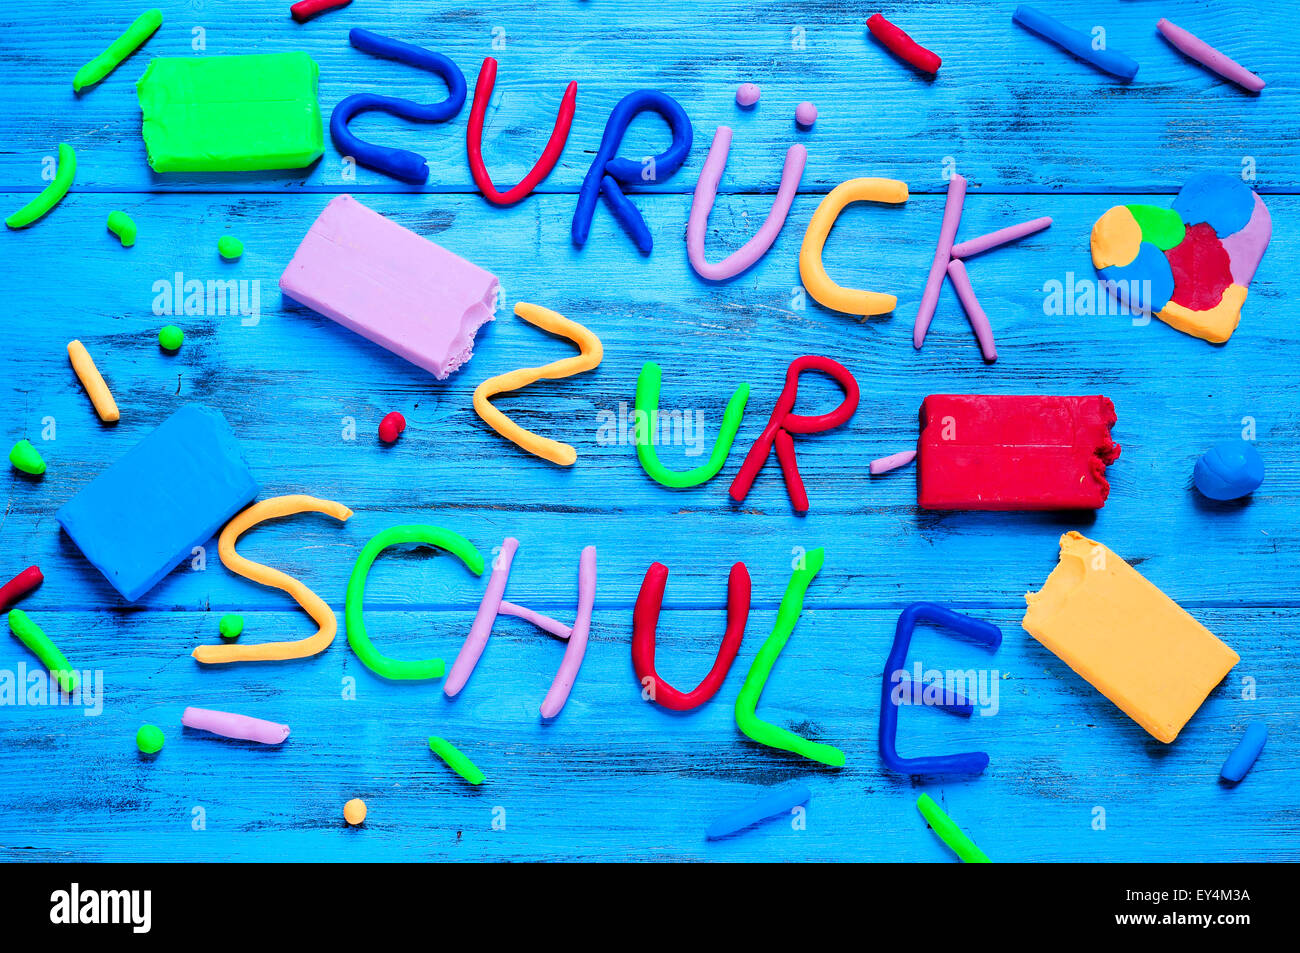 the sentence zuruck zur schule, back to school in german, written with modelling clay of different colors on a blue - Stock Image